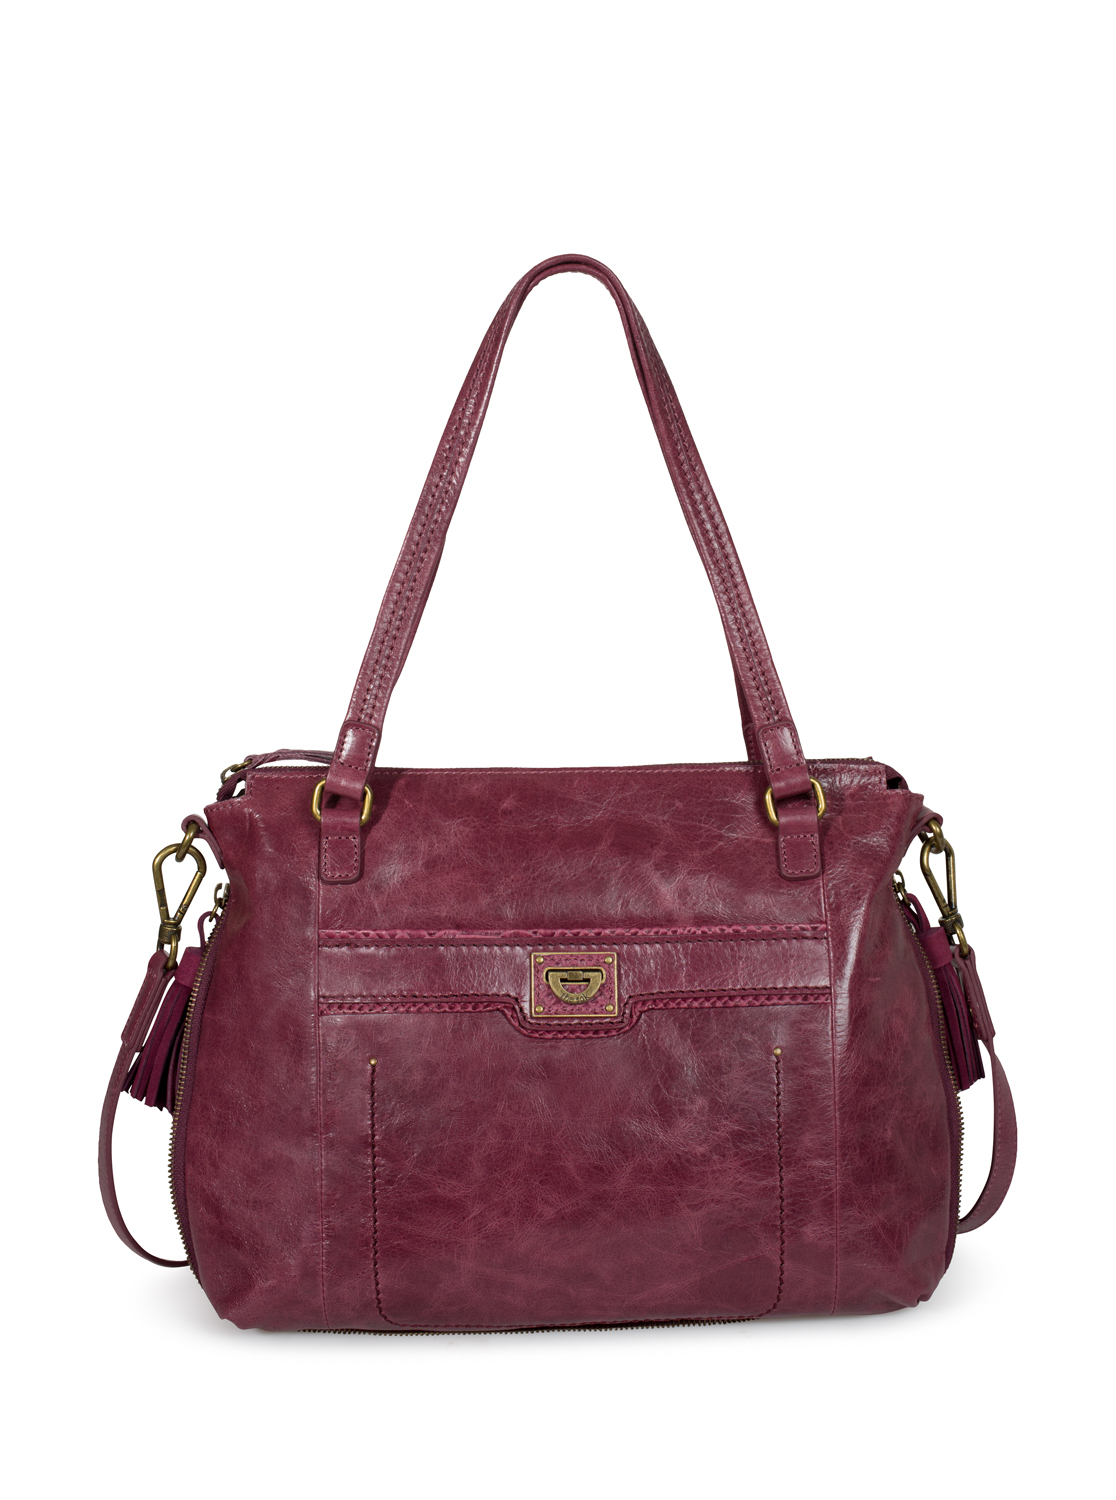 huntington_satchel_106236_bordeaux_S.jpg